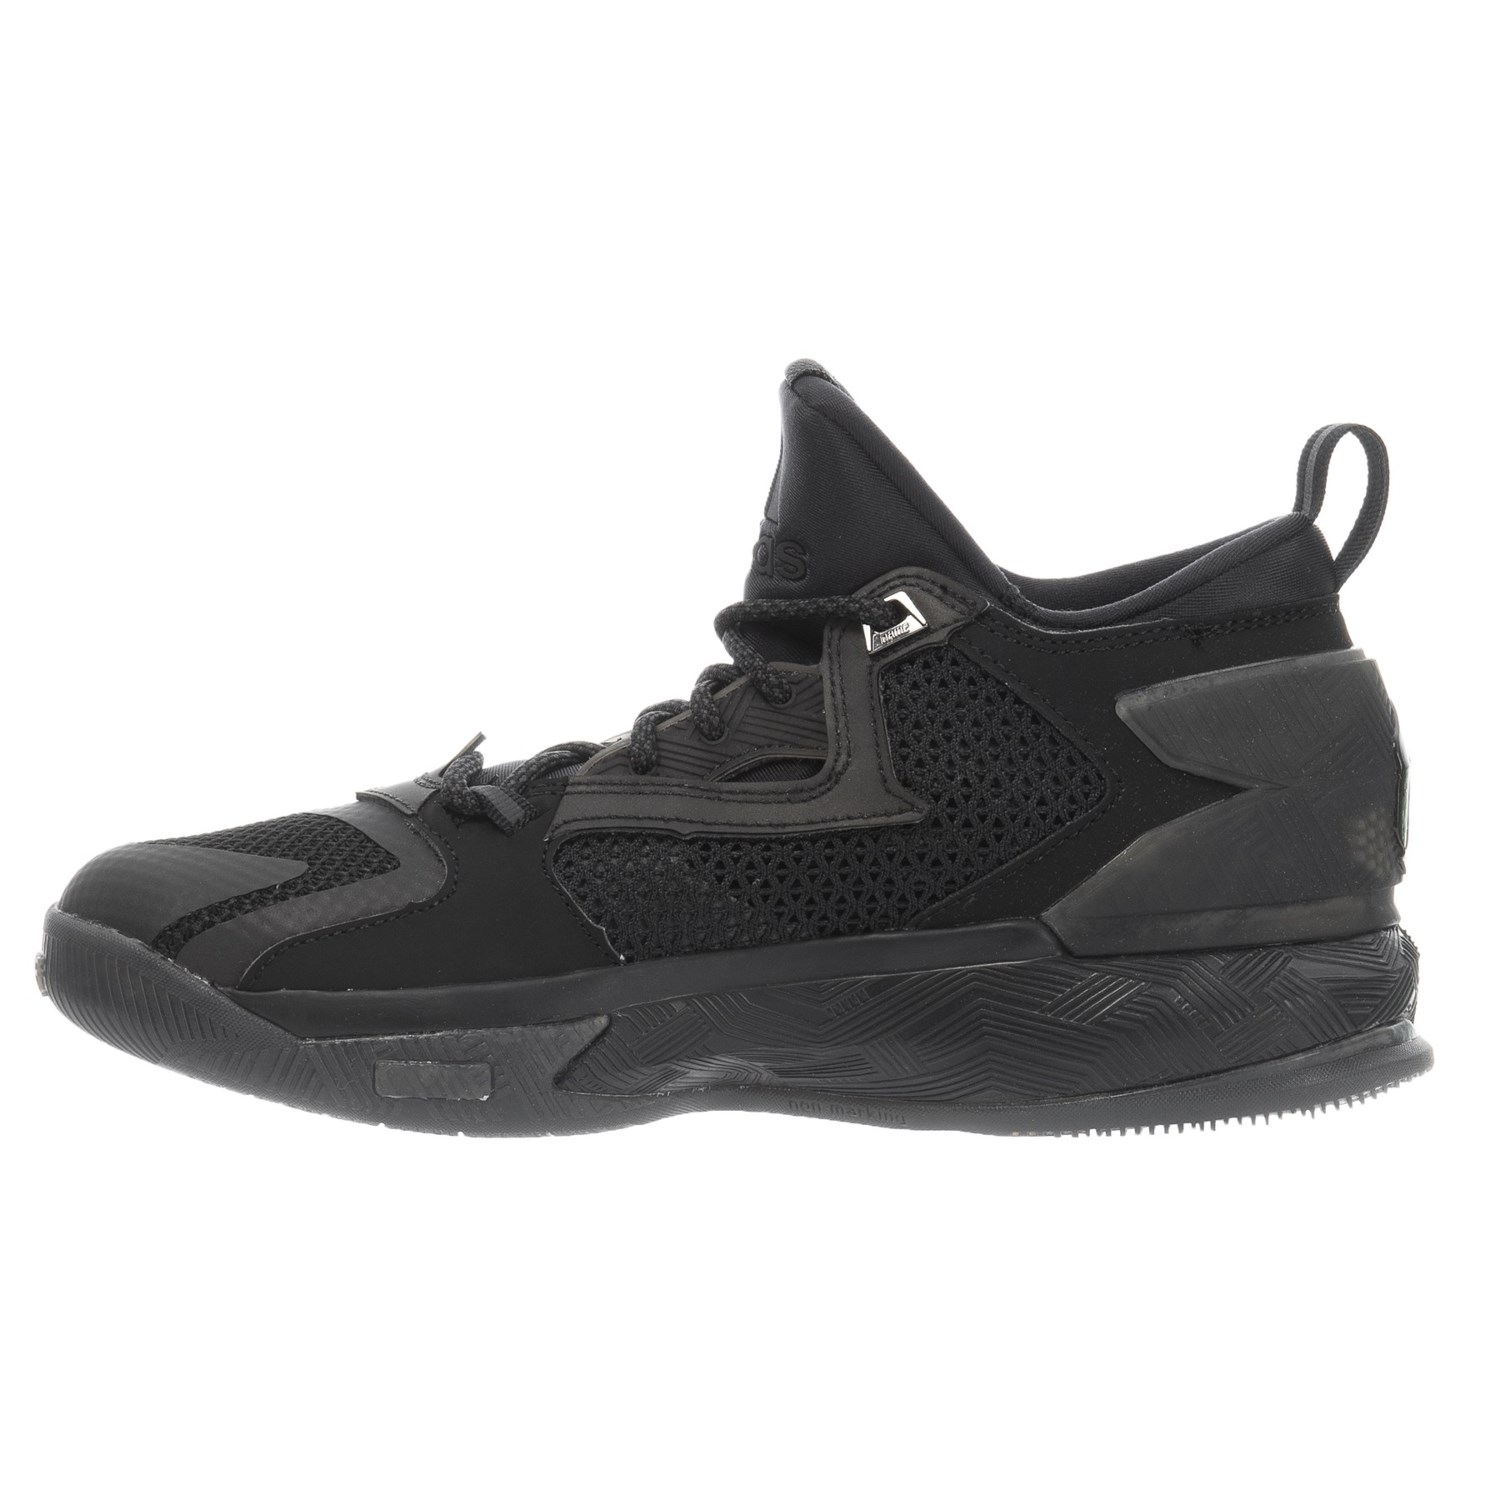 meet ddfa3 a8880 ... purchase adidas damian lillard 2 basketball shoes for little and big  kids f784f 28b7b